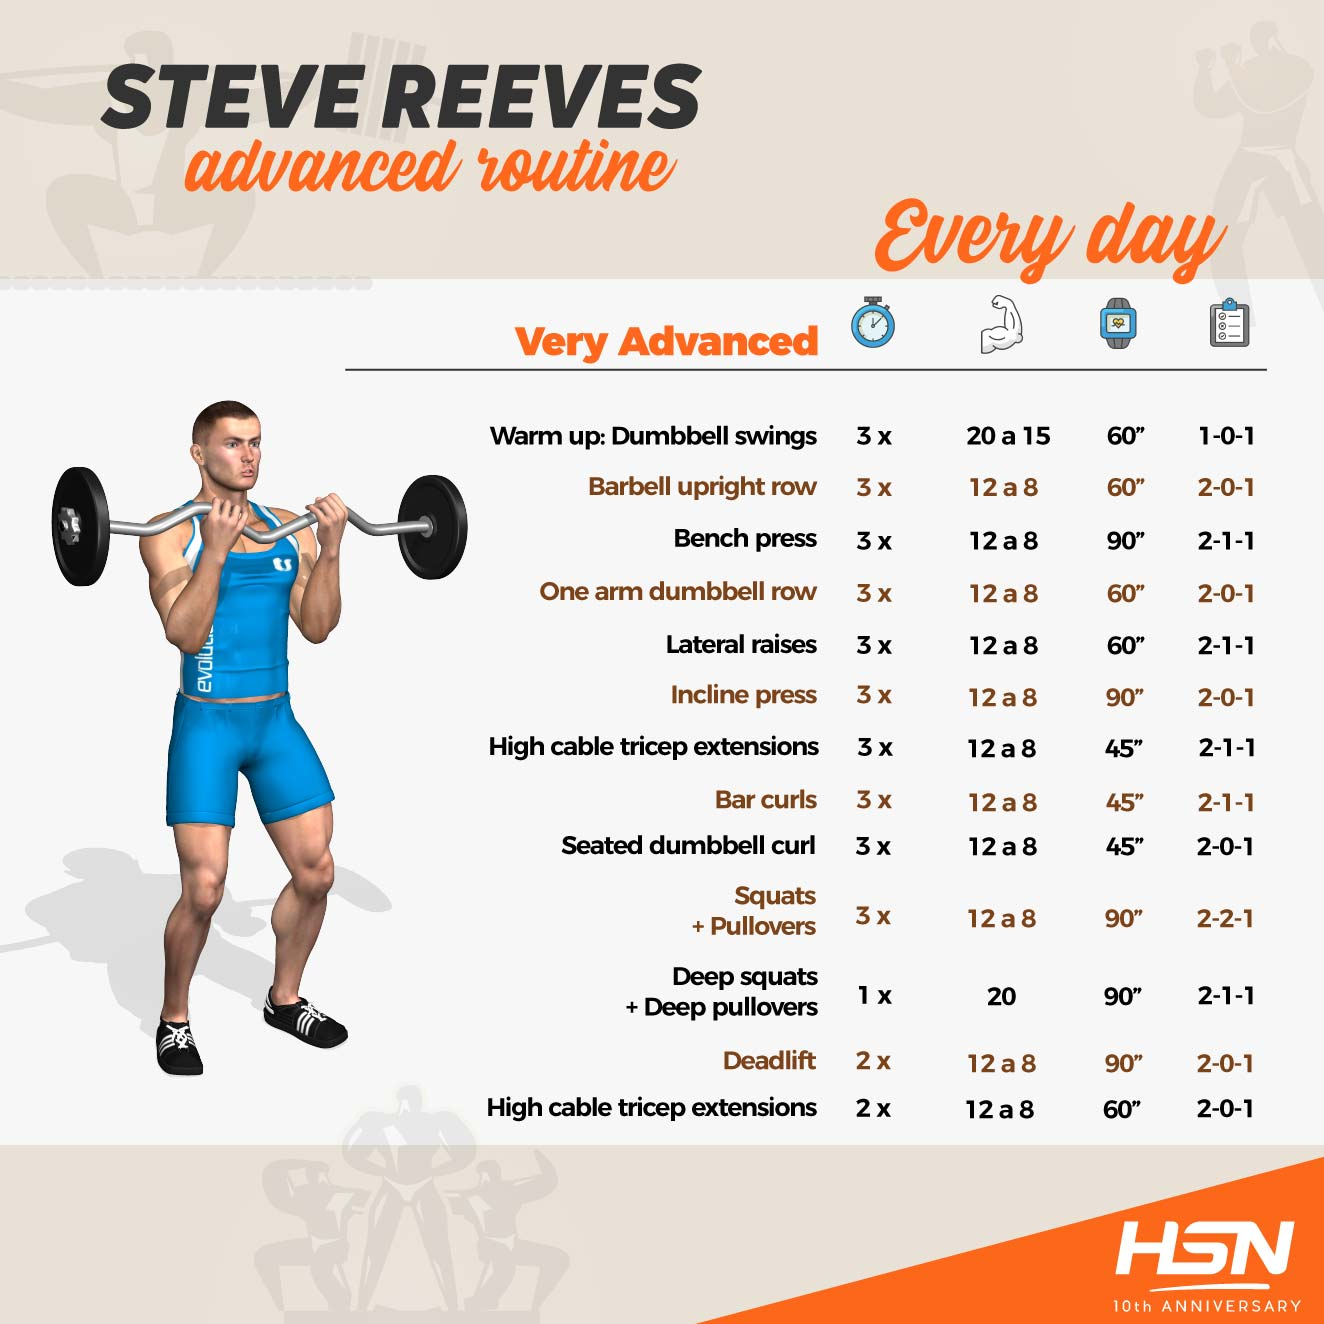 Advanced Reeves routine